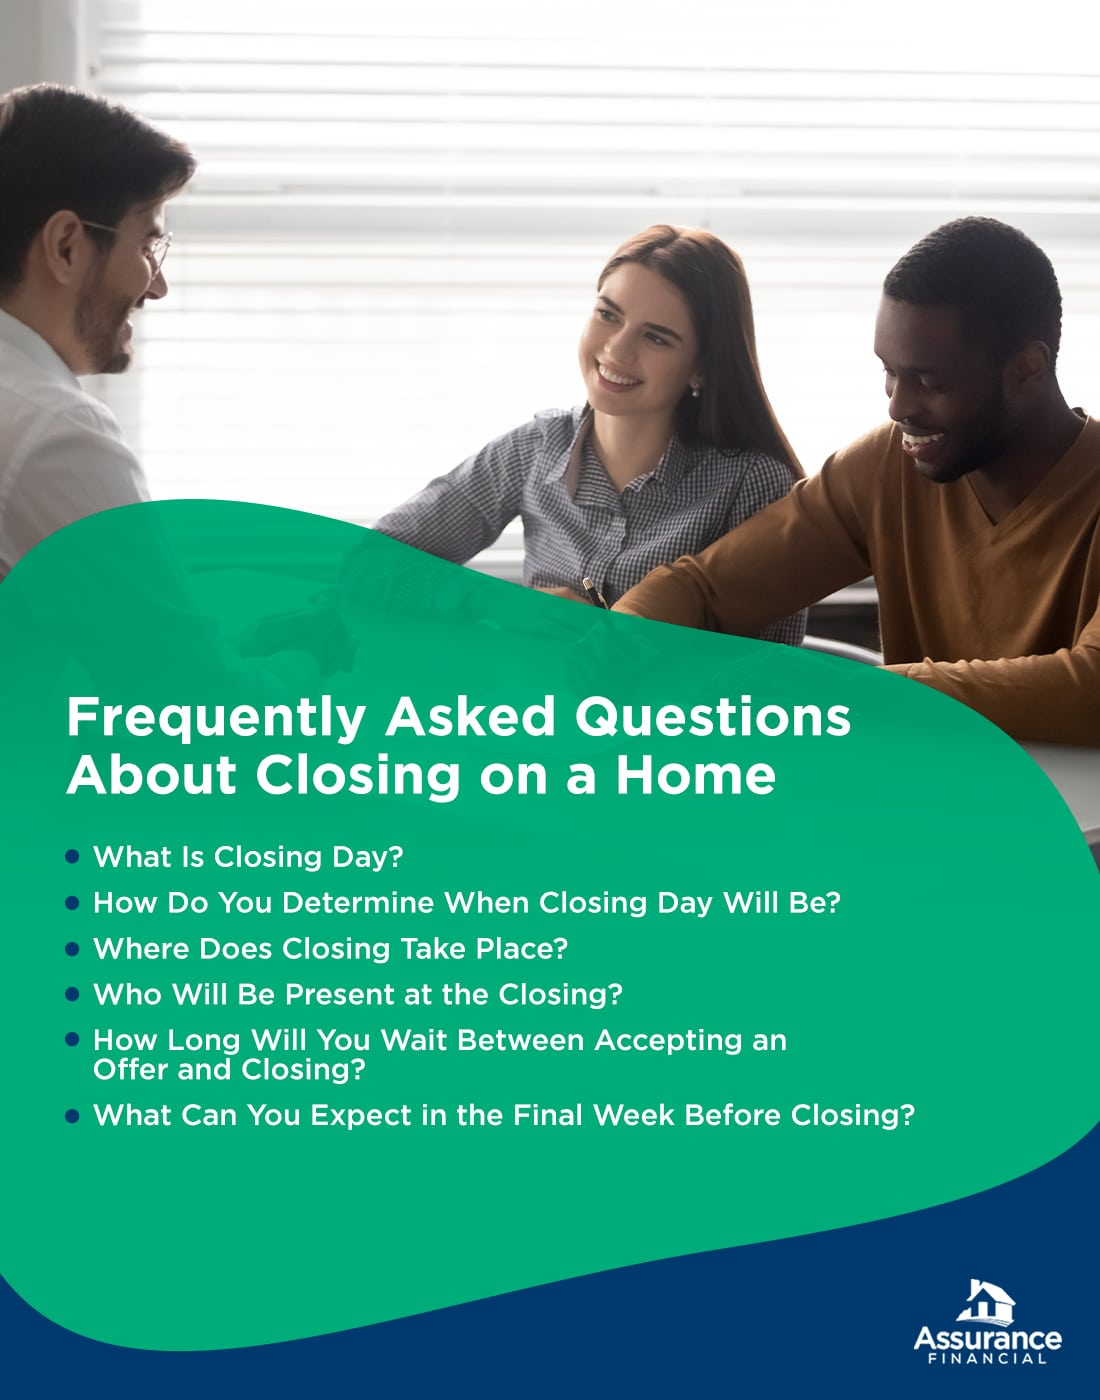 09-Frequently-Asked-Questions-About-Closing-on-a-Home